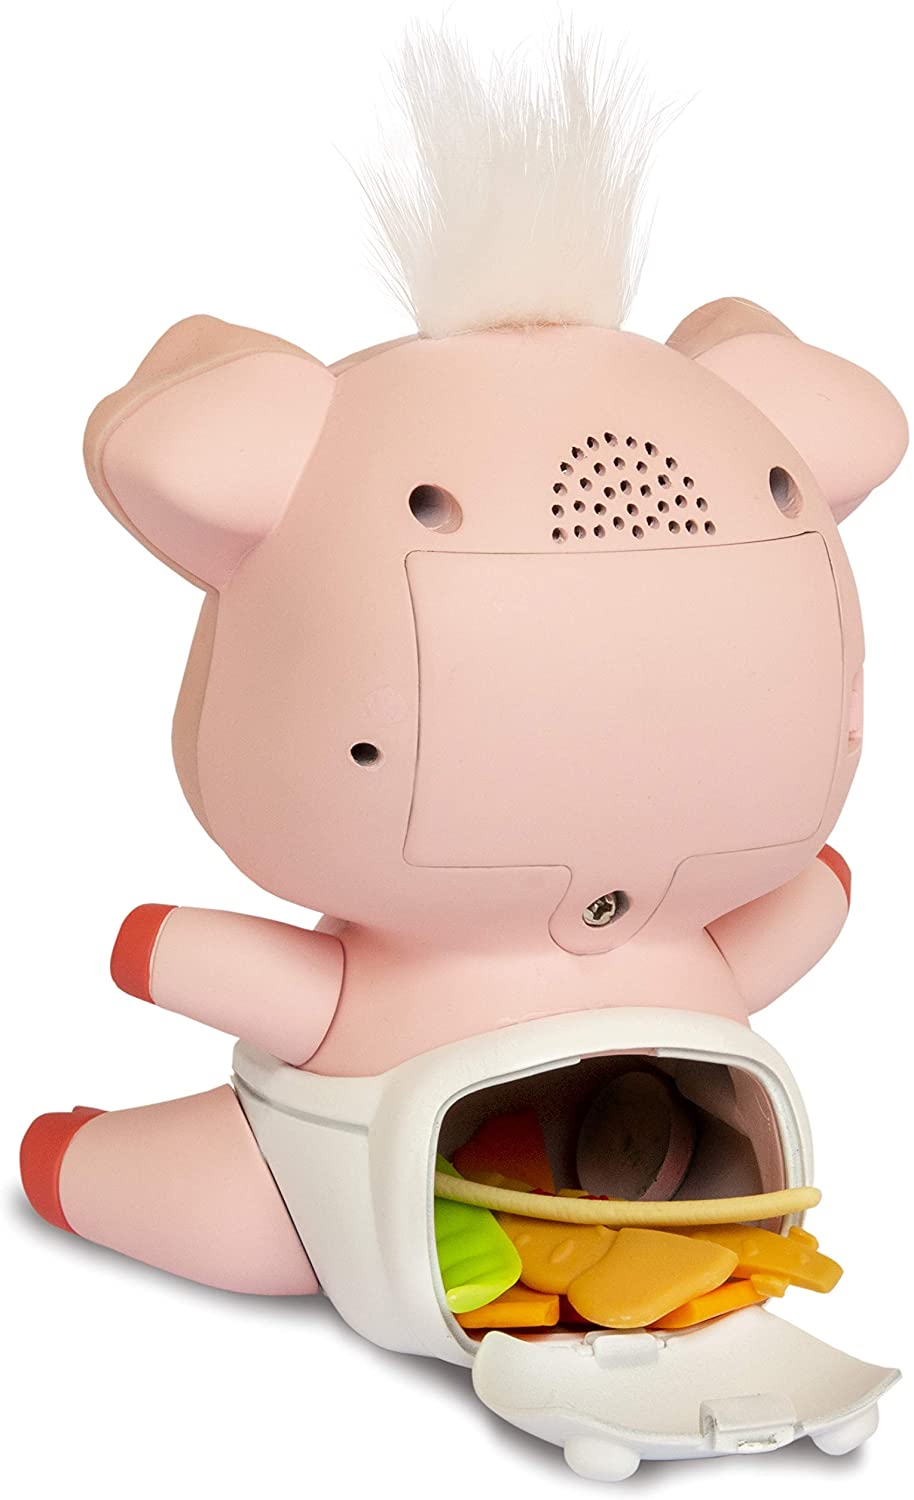 Munchkinz-GE11601-Interactive-pet-Pig-with-30-Sounds-and-Movement-Multi thumbnail 3